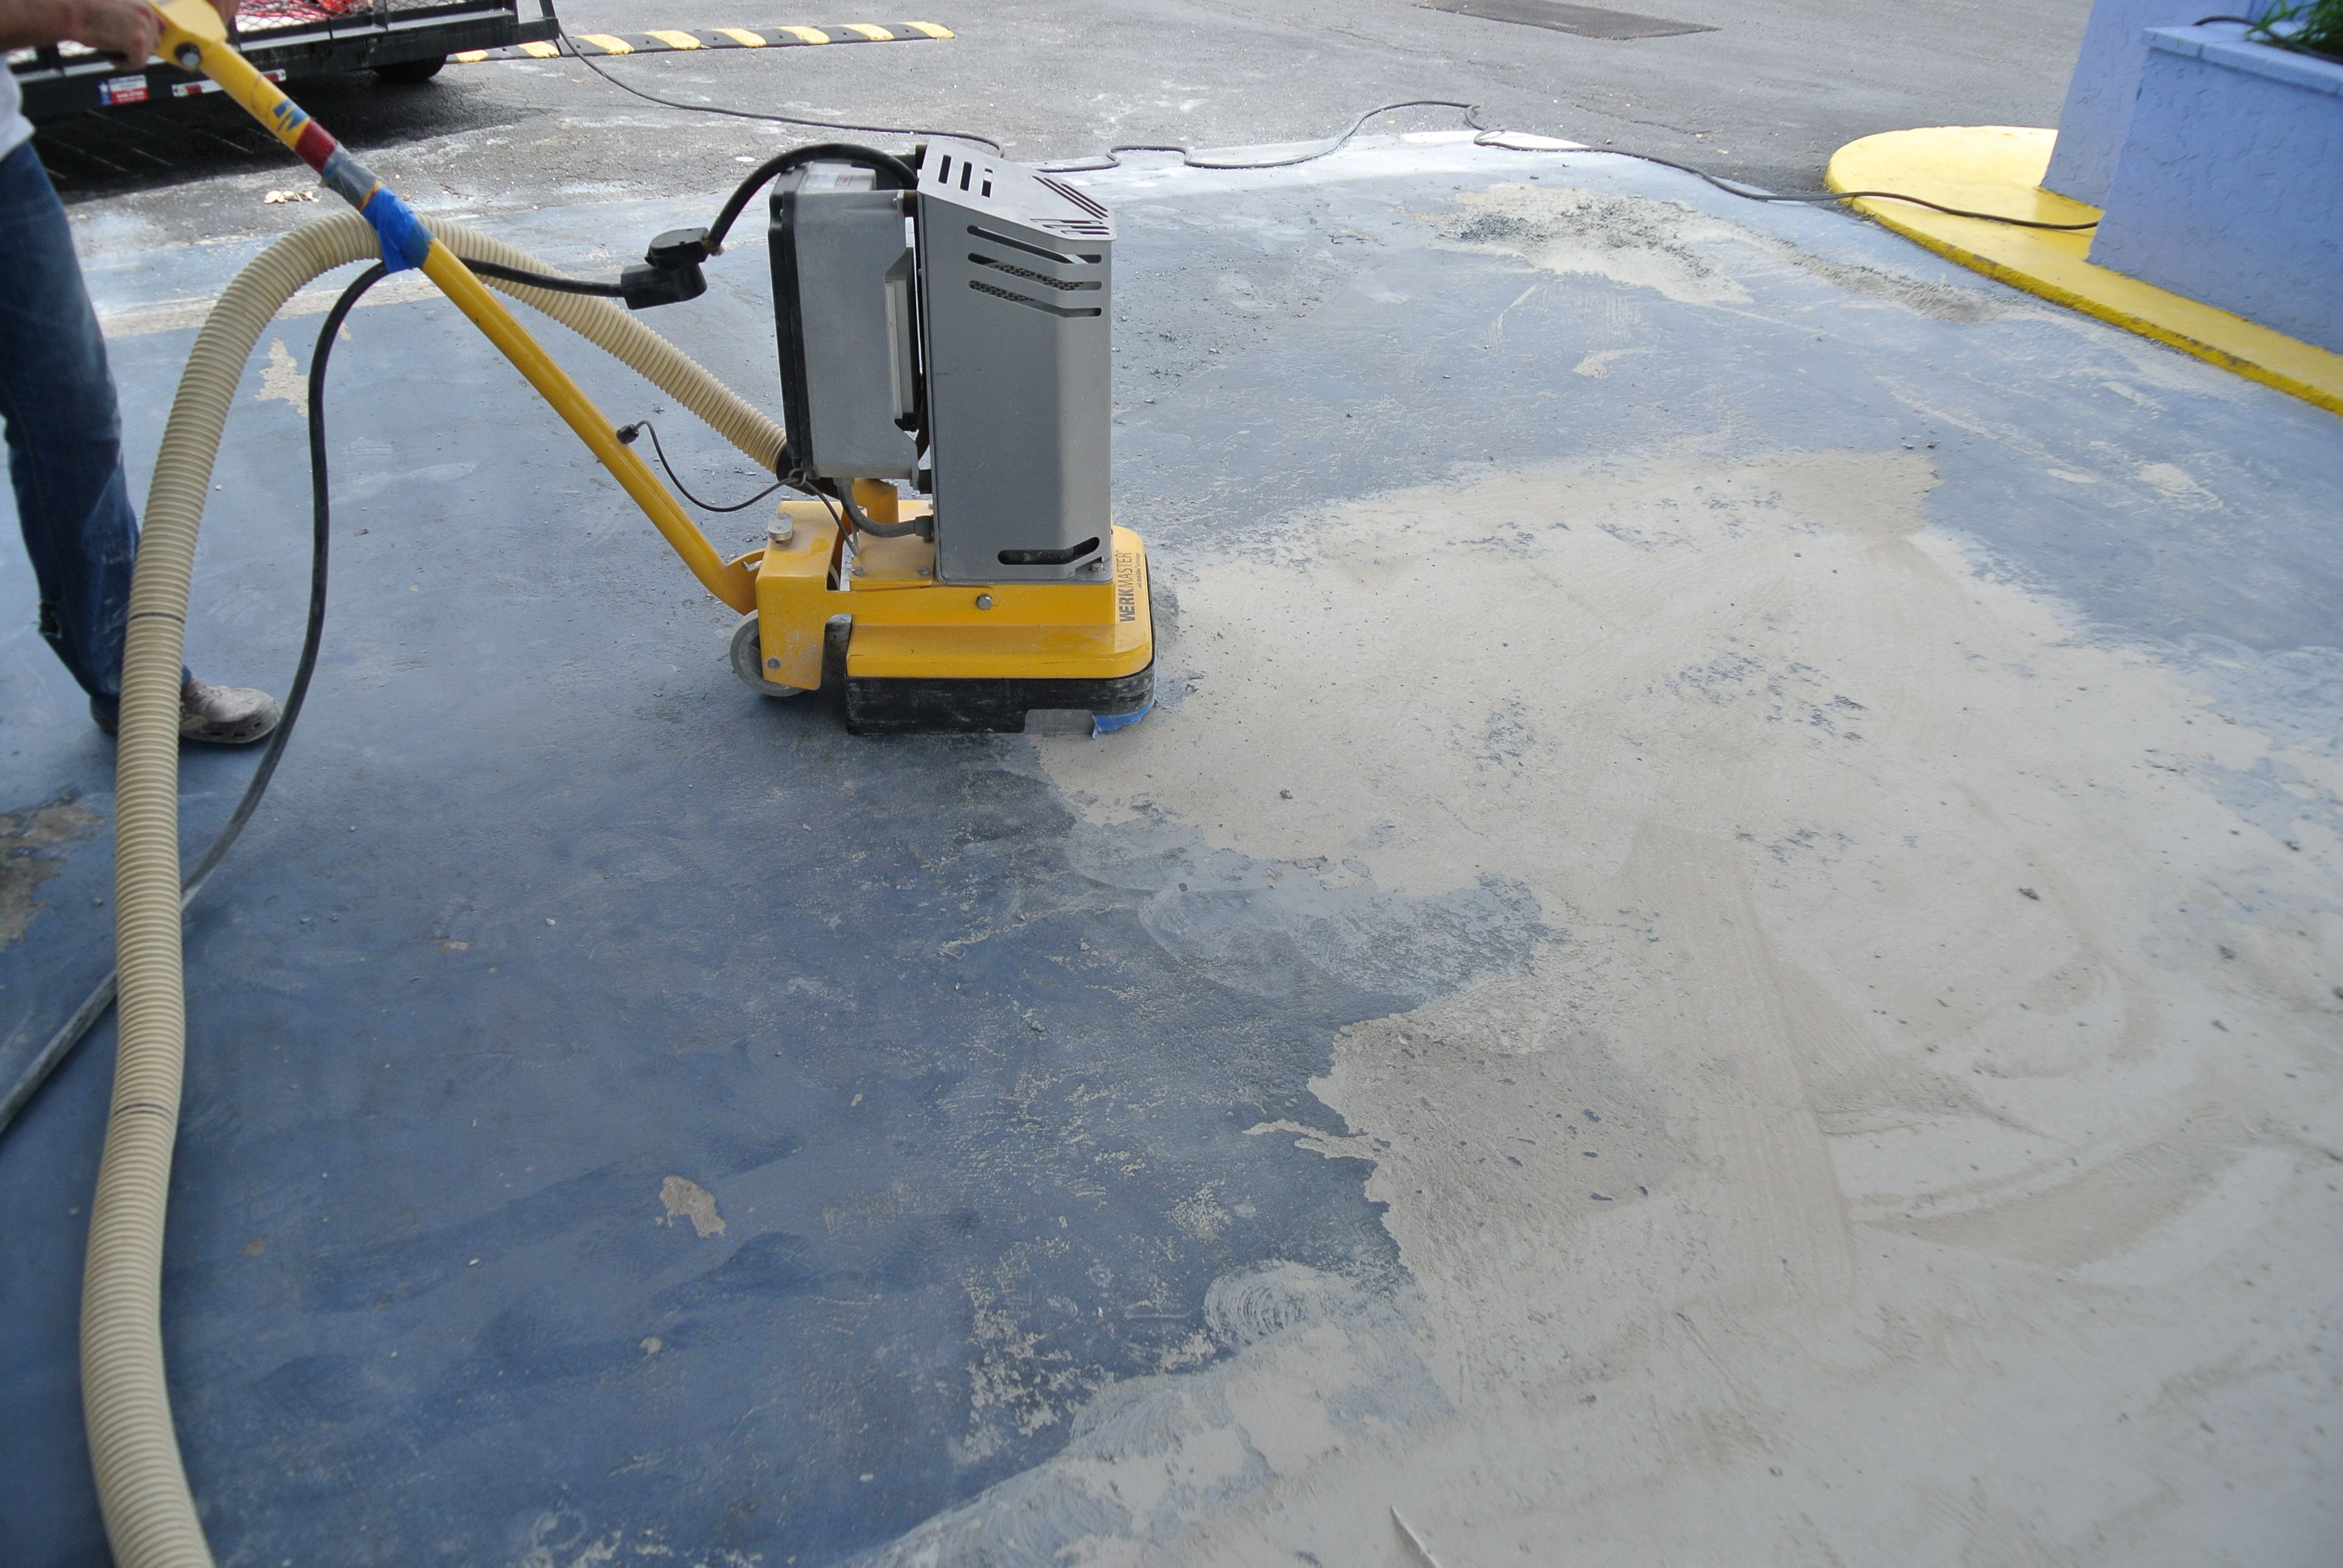 how to clean engine oil off concrete